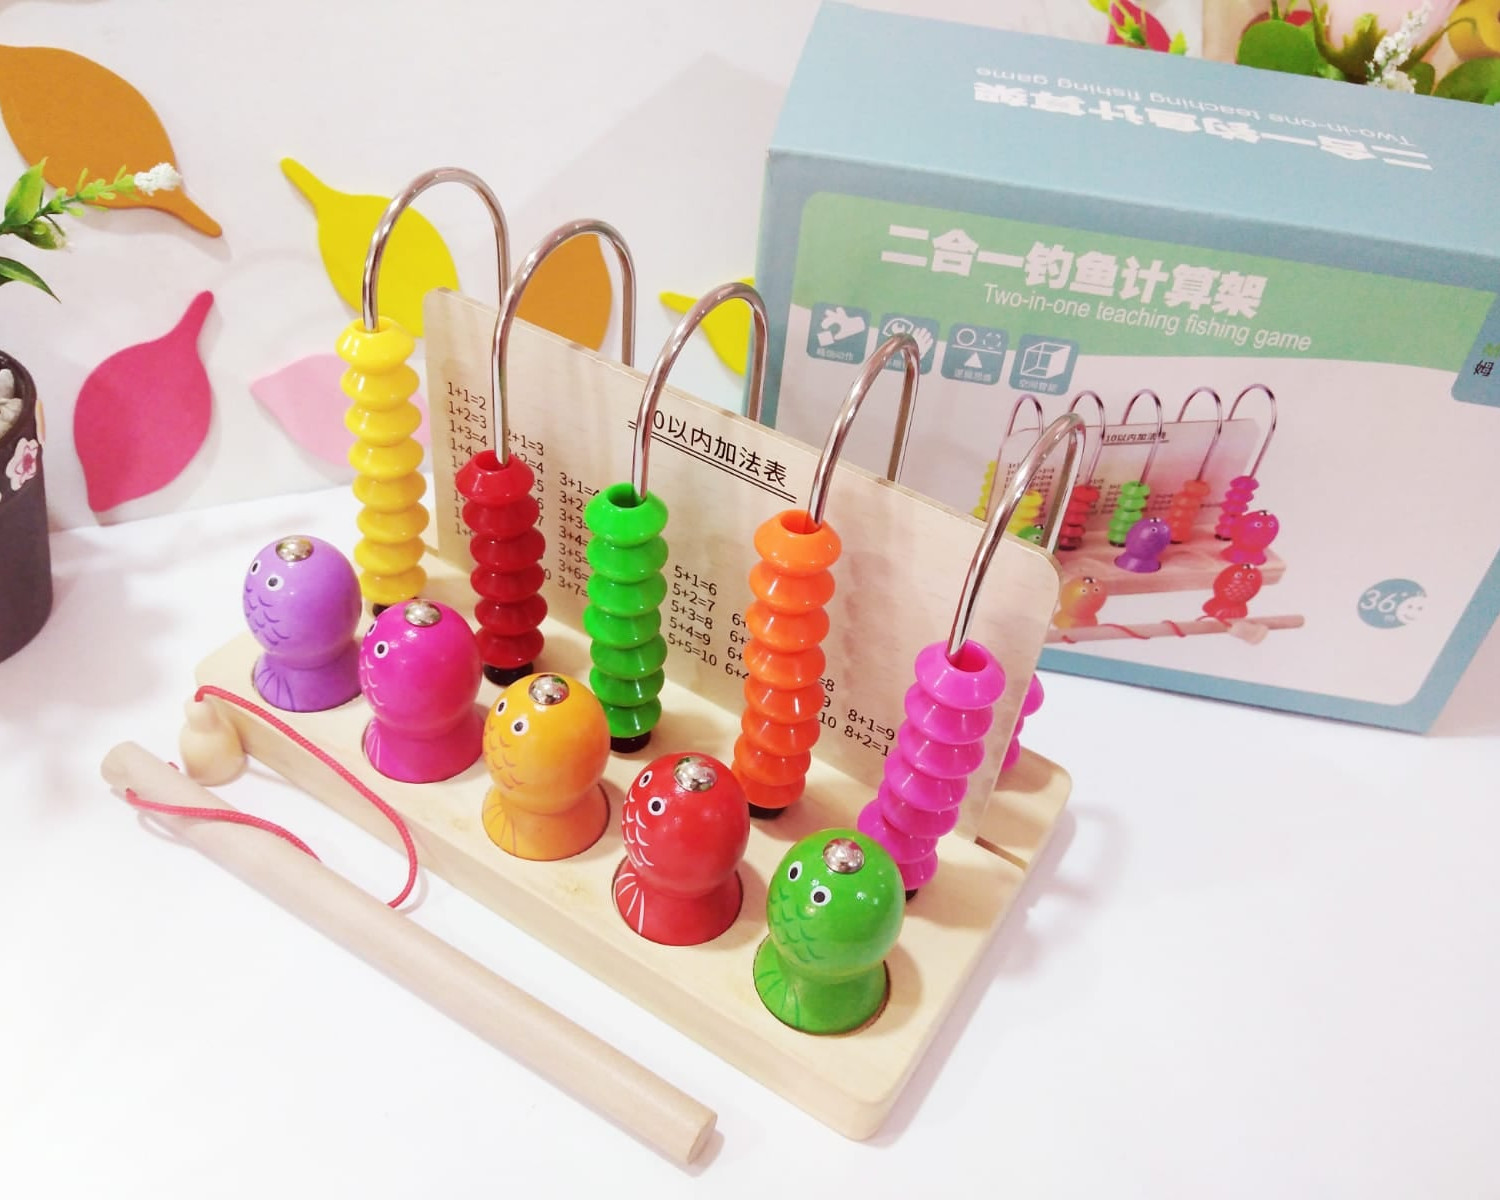 Two-in-one teaching fishing game